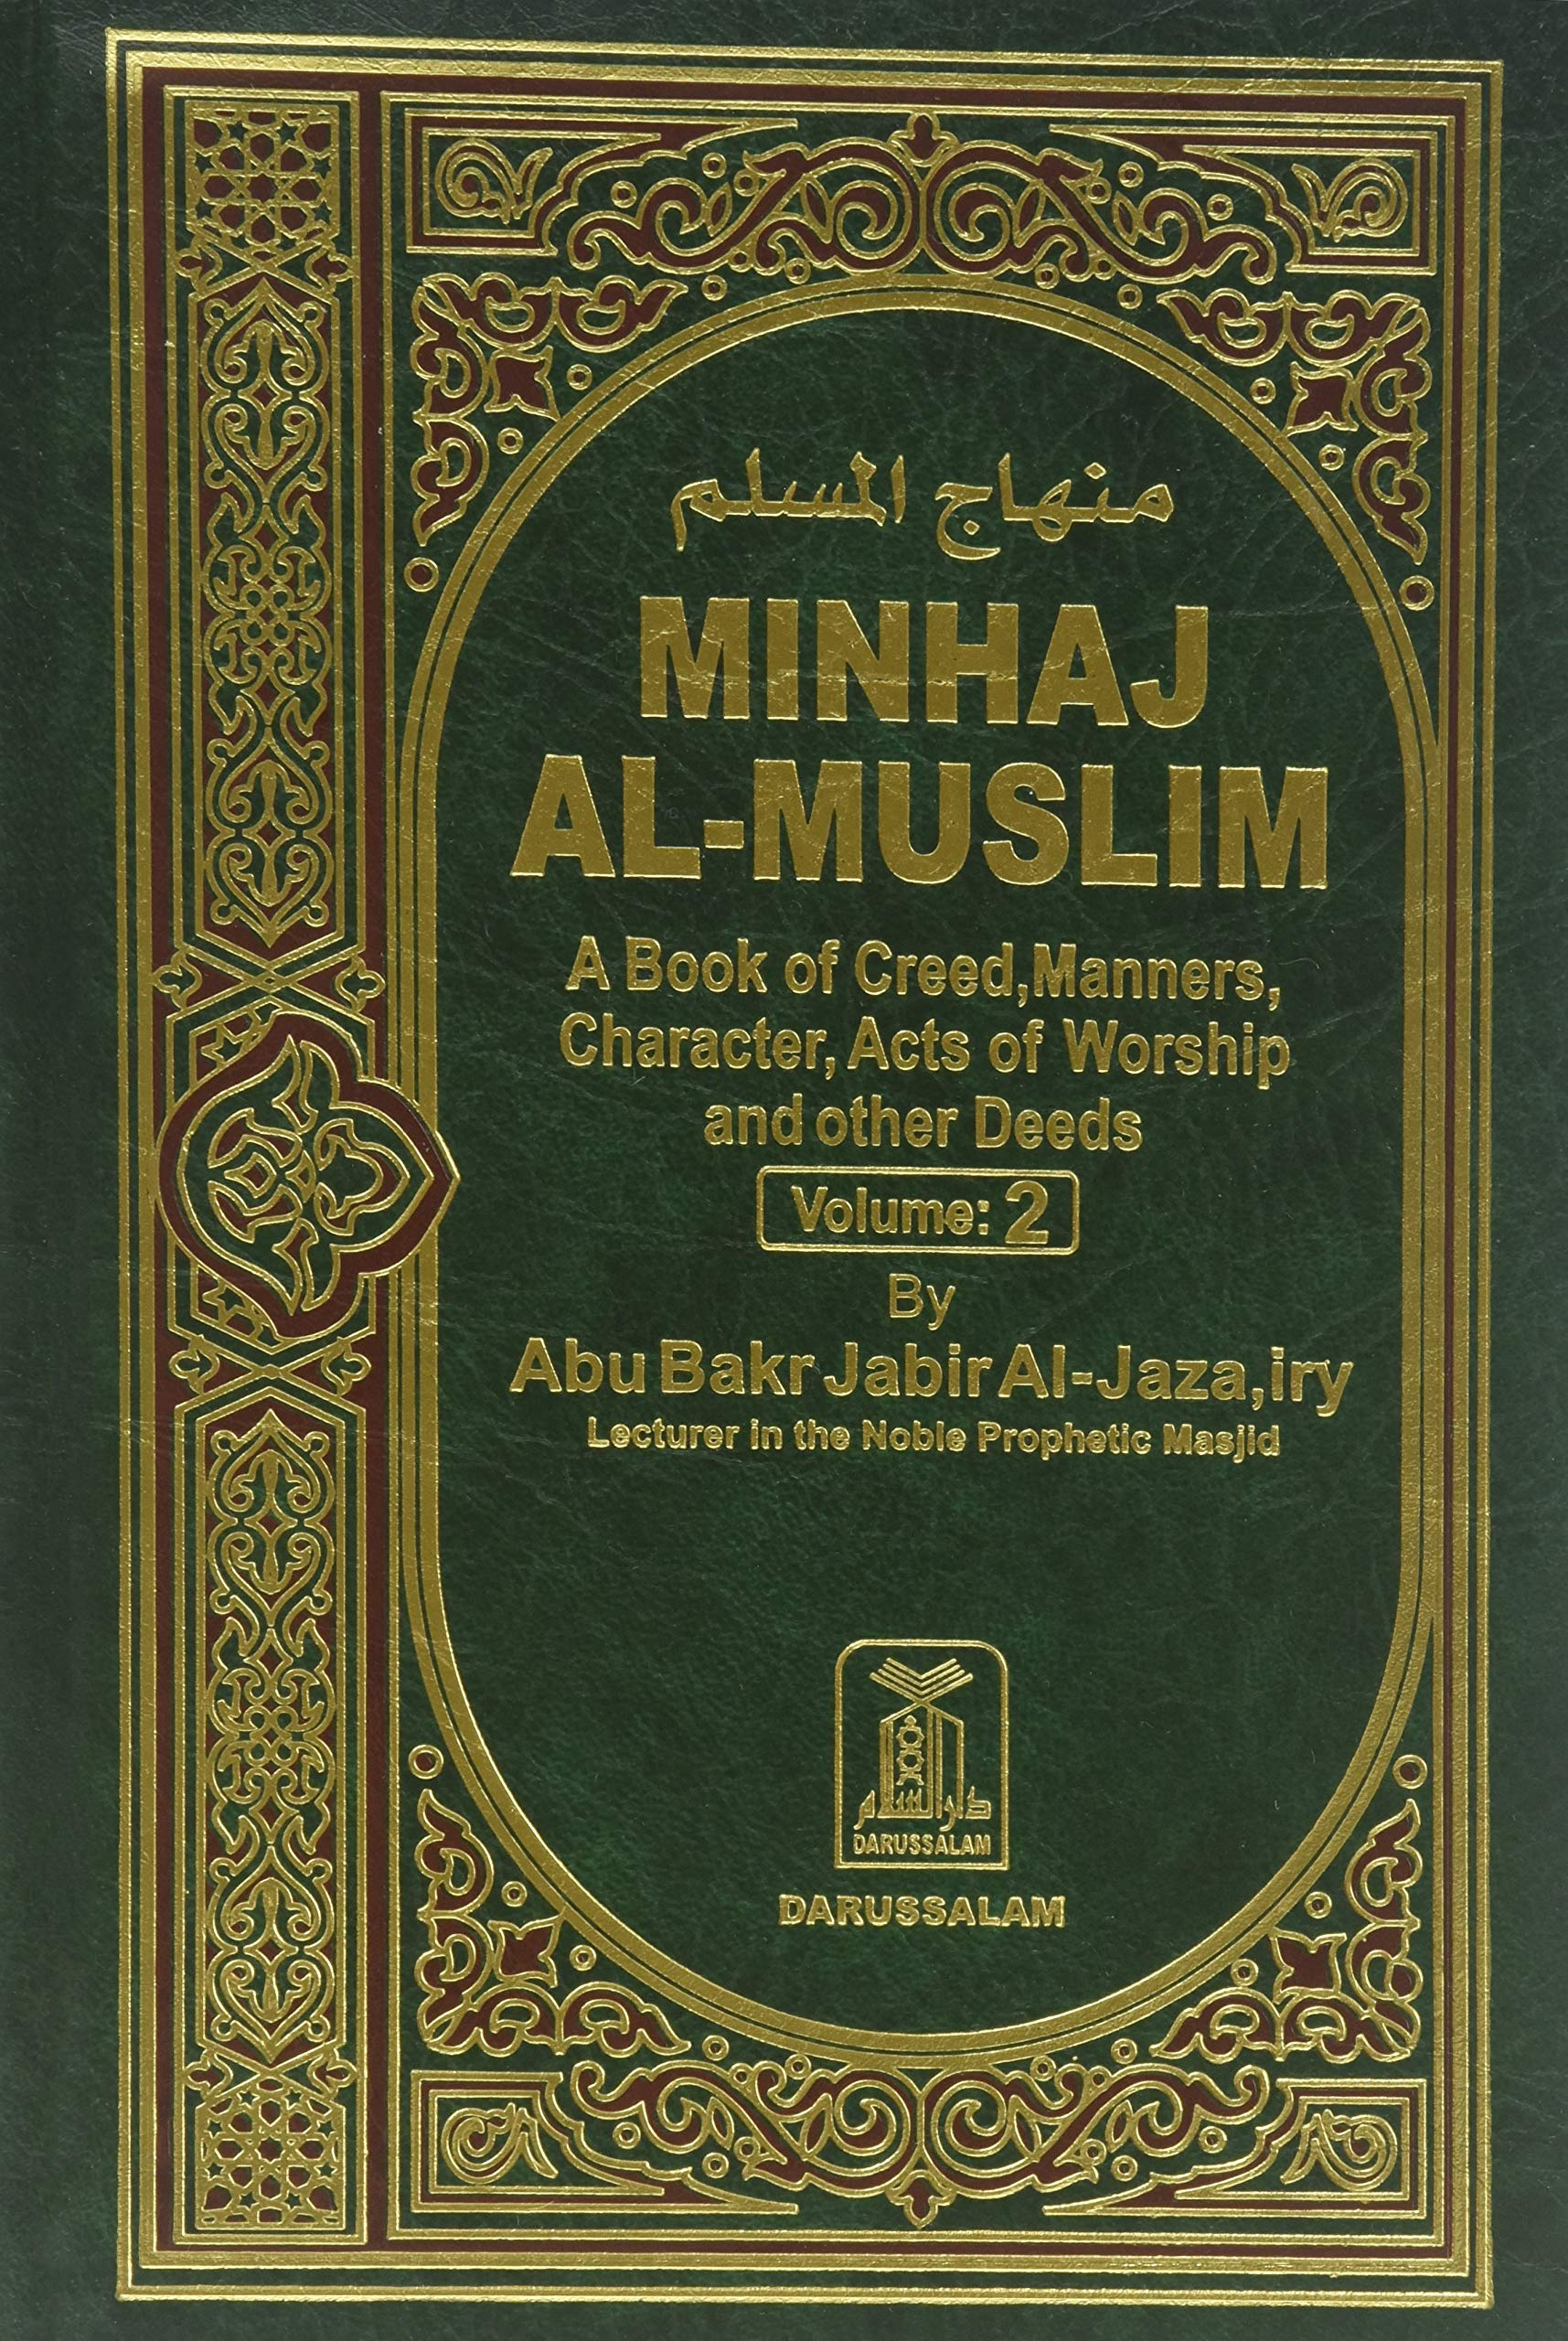 Minhaj Al-Muslim: A Book of Creed, Manners, Character, Acts of